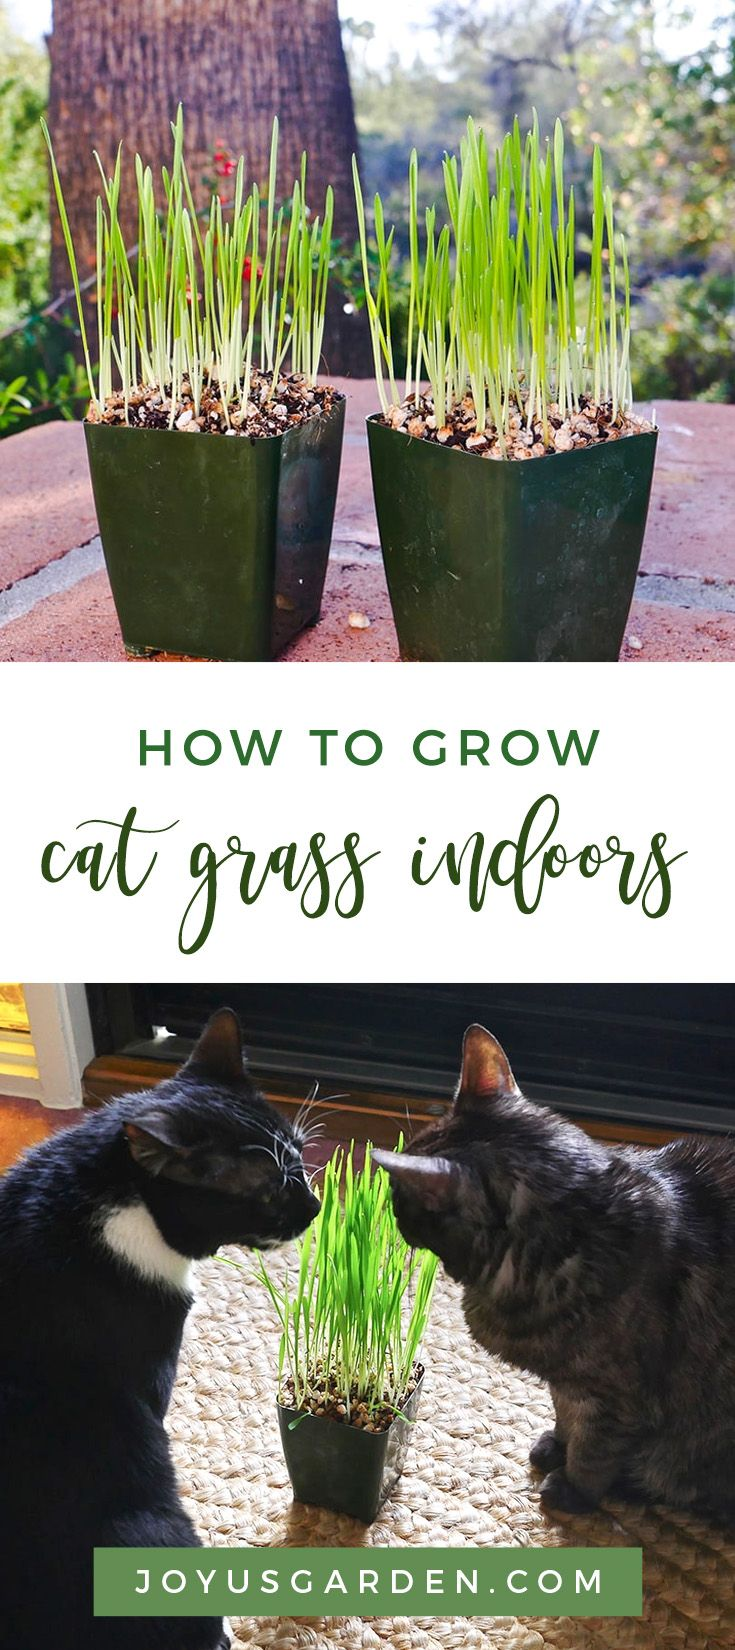 How To Grow Cat Grass Indoors: So Easy To Do From Seed in ...